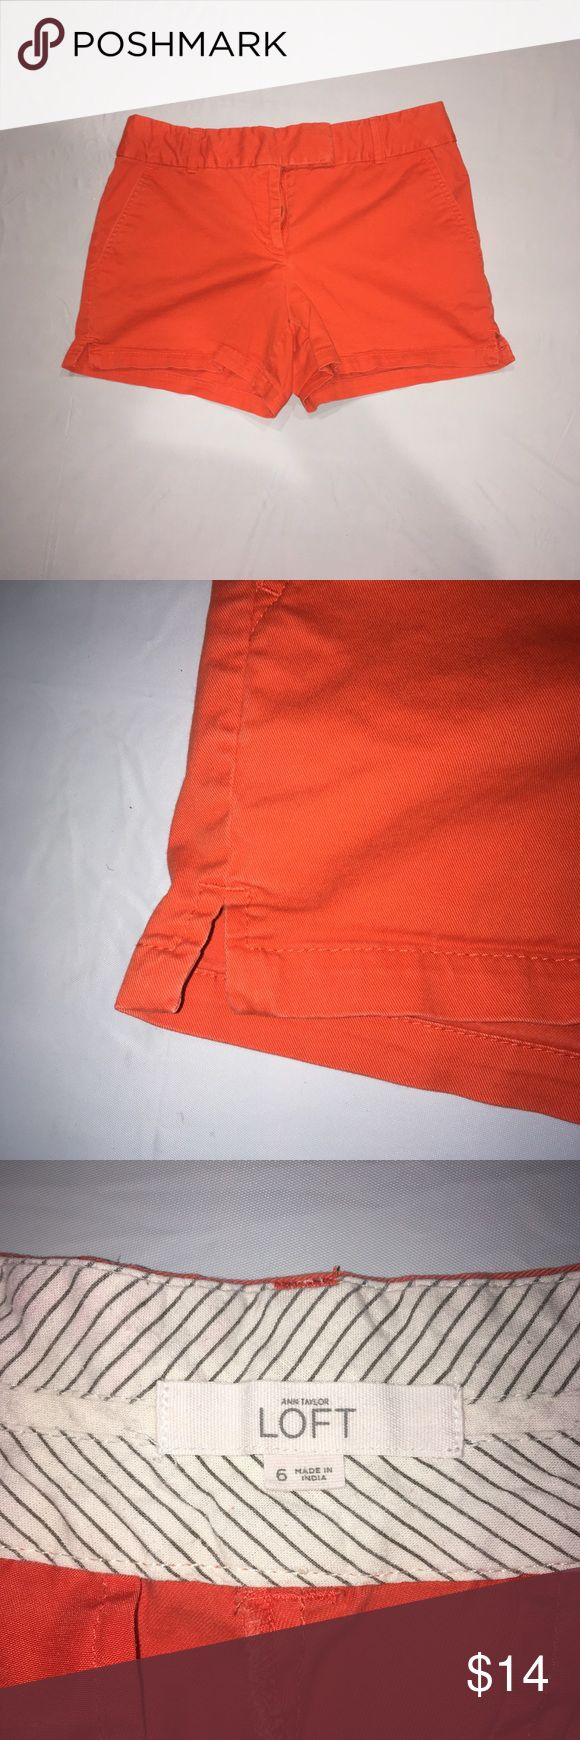 Loft Size 6 Women's Orange Shorts Women's Orange Loft Size 6 Shorts. They have a 10 inch rise and a 4 inch inseam. LOFT Shorts